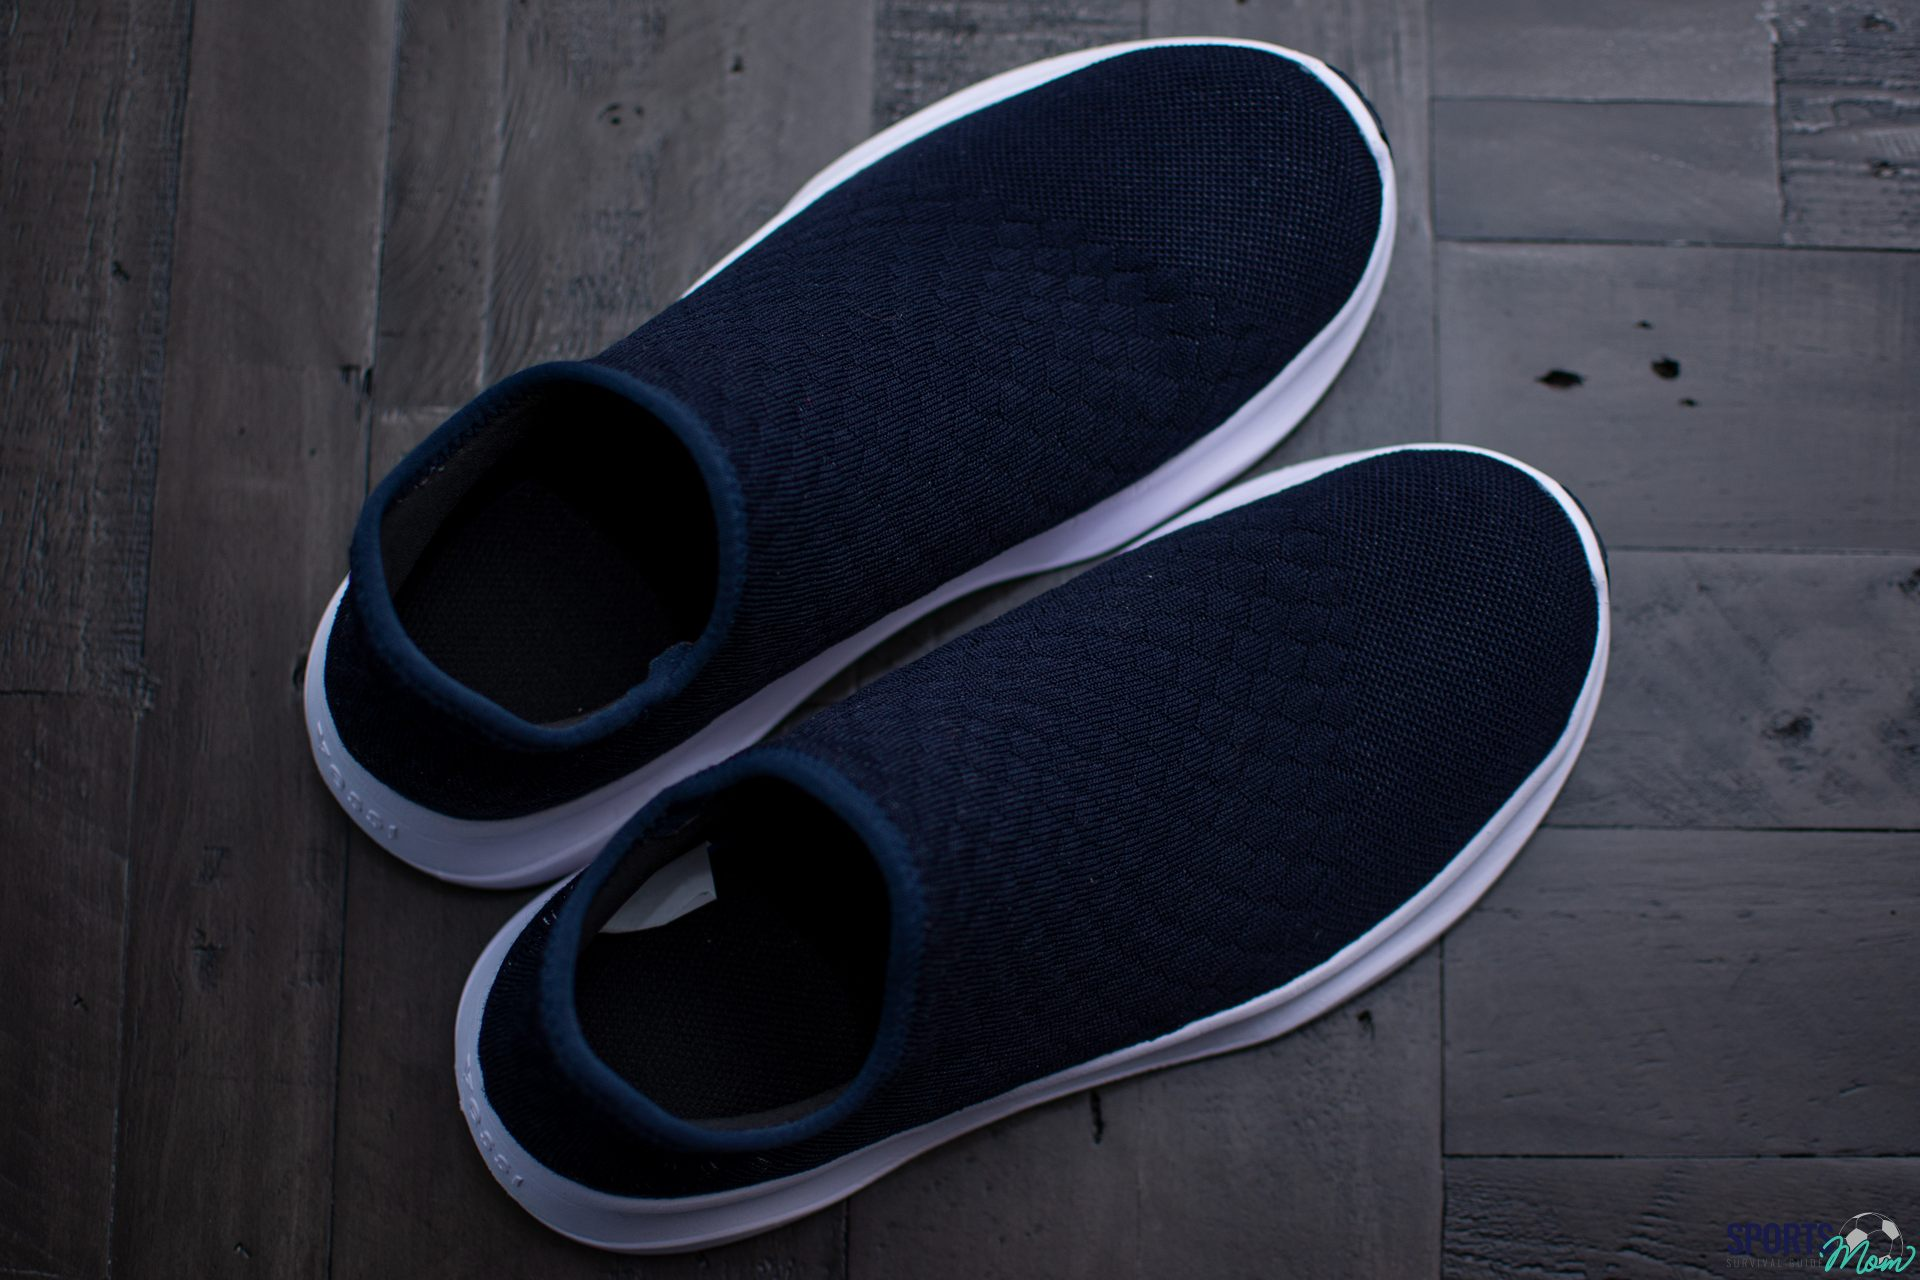 Vessi Everyday Slip-On Waterproof Shoes